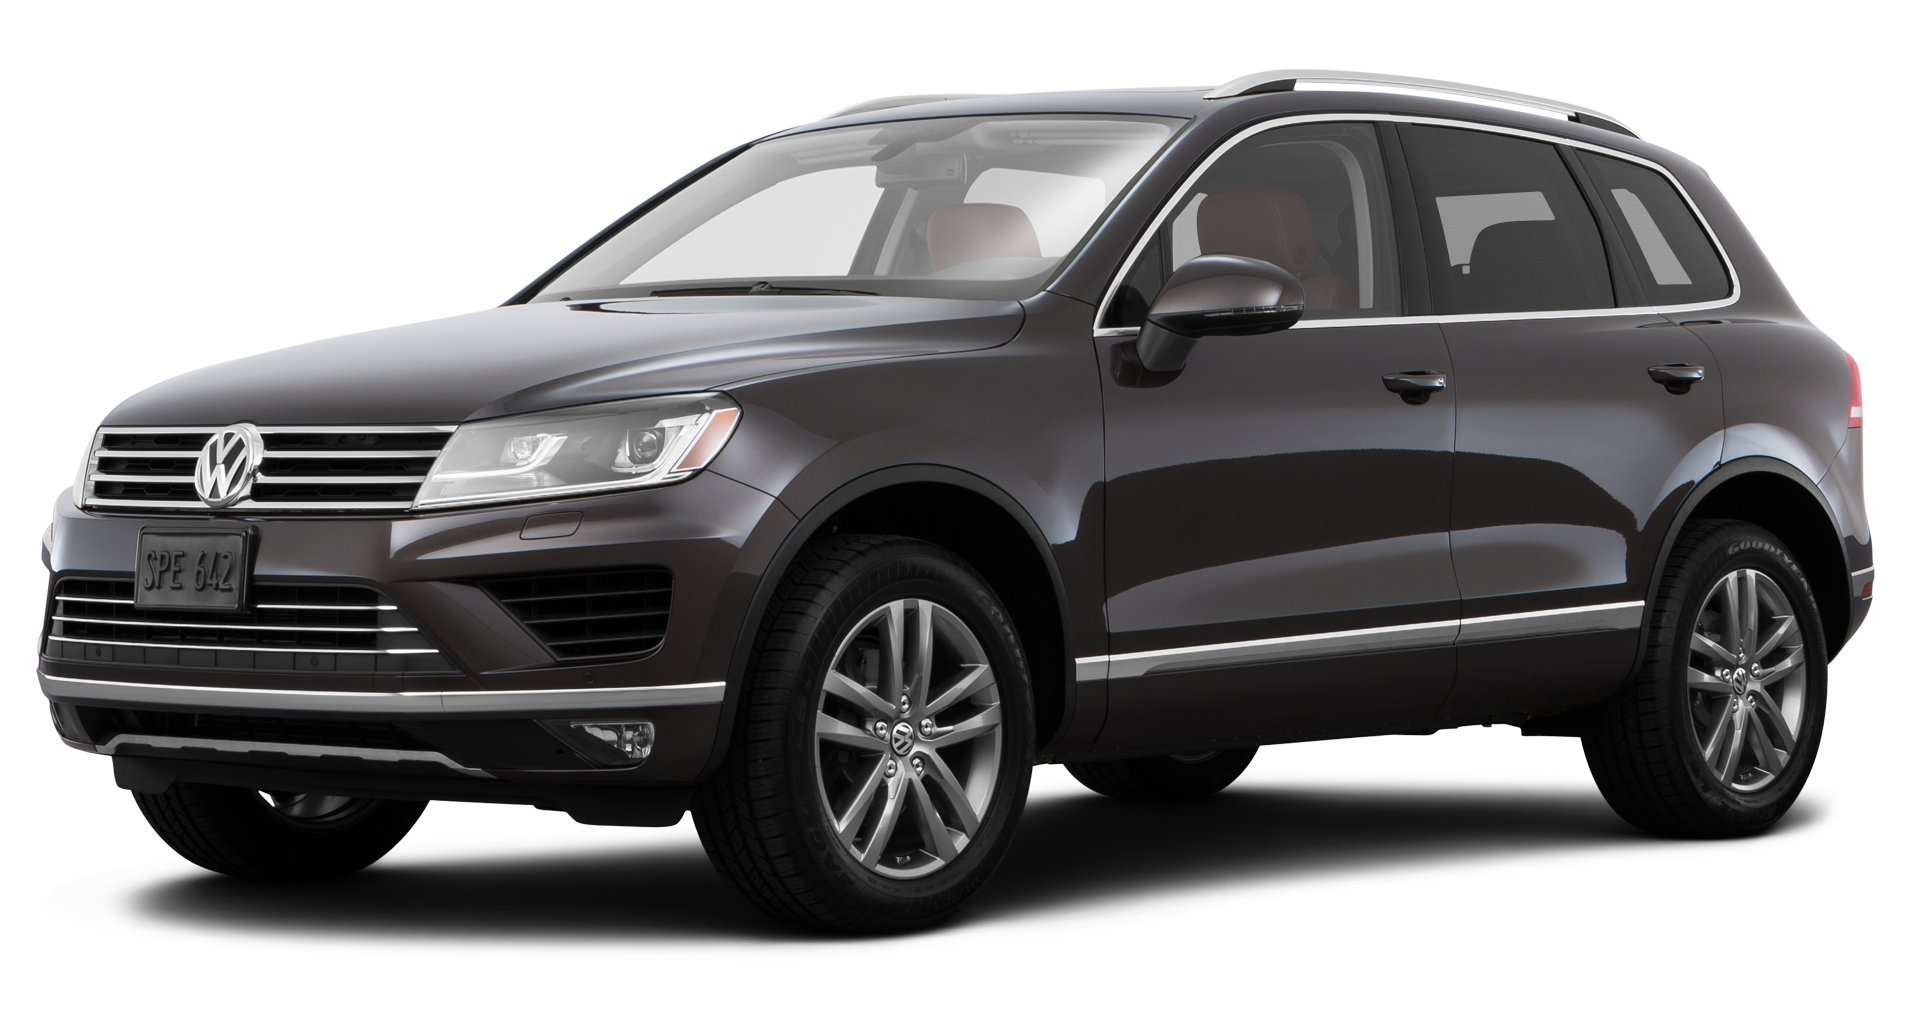 ... 2015 Volkswagen Touareg Executive, 4-Door TDI ...